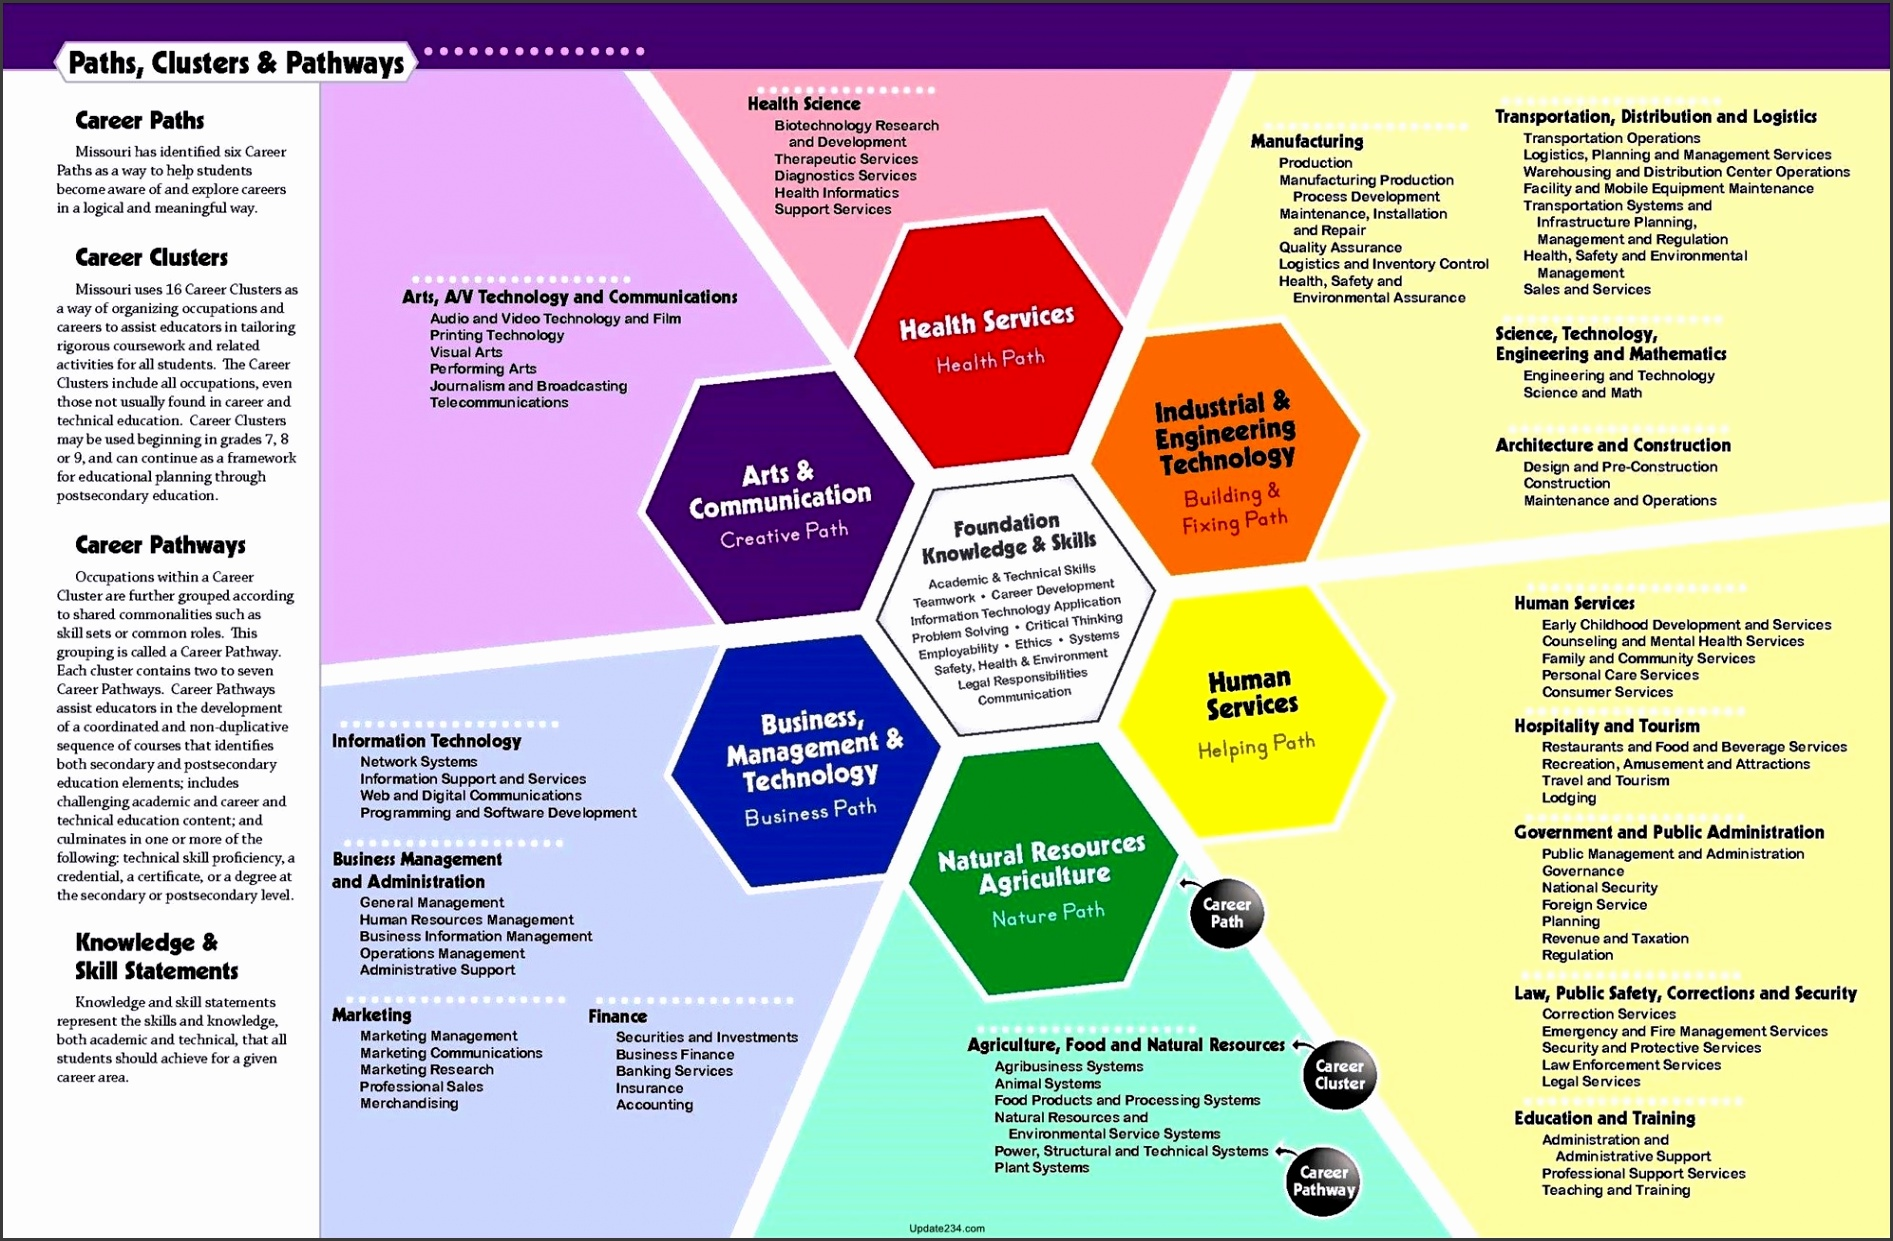 Career planning and personal development plan Sample The career planning process proposed by The University of Edinburg Career Services The career